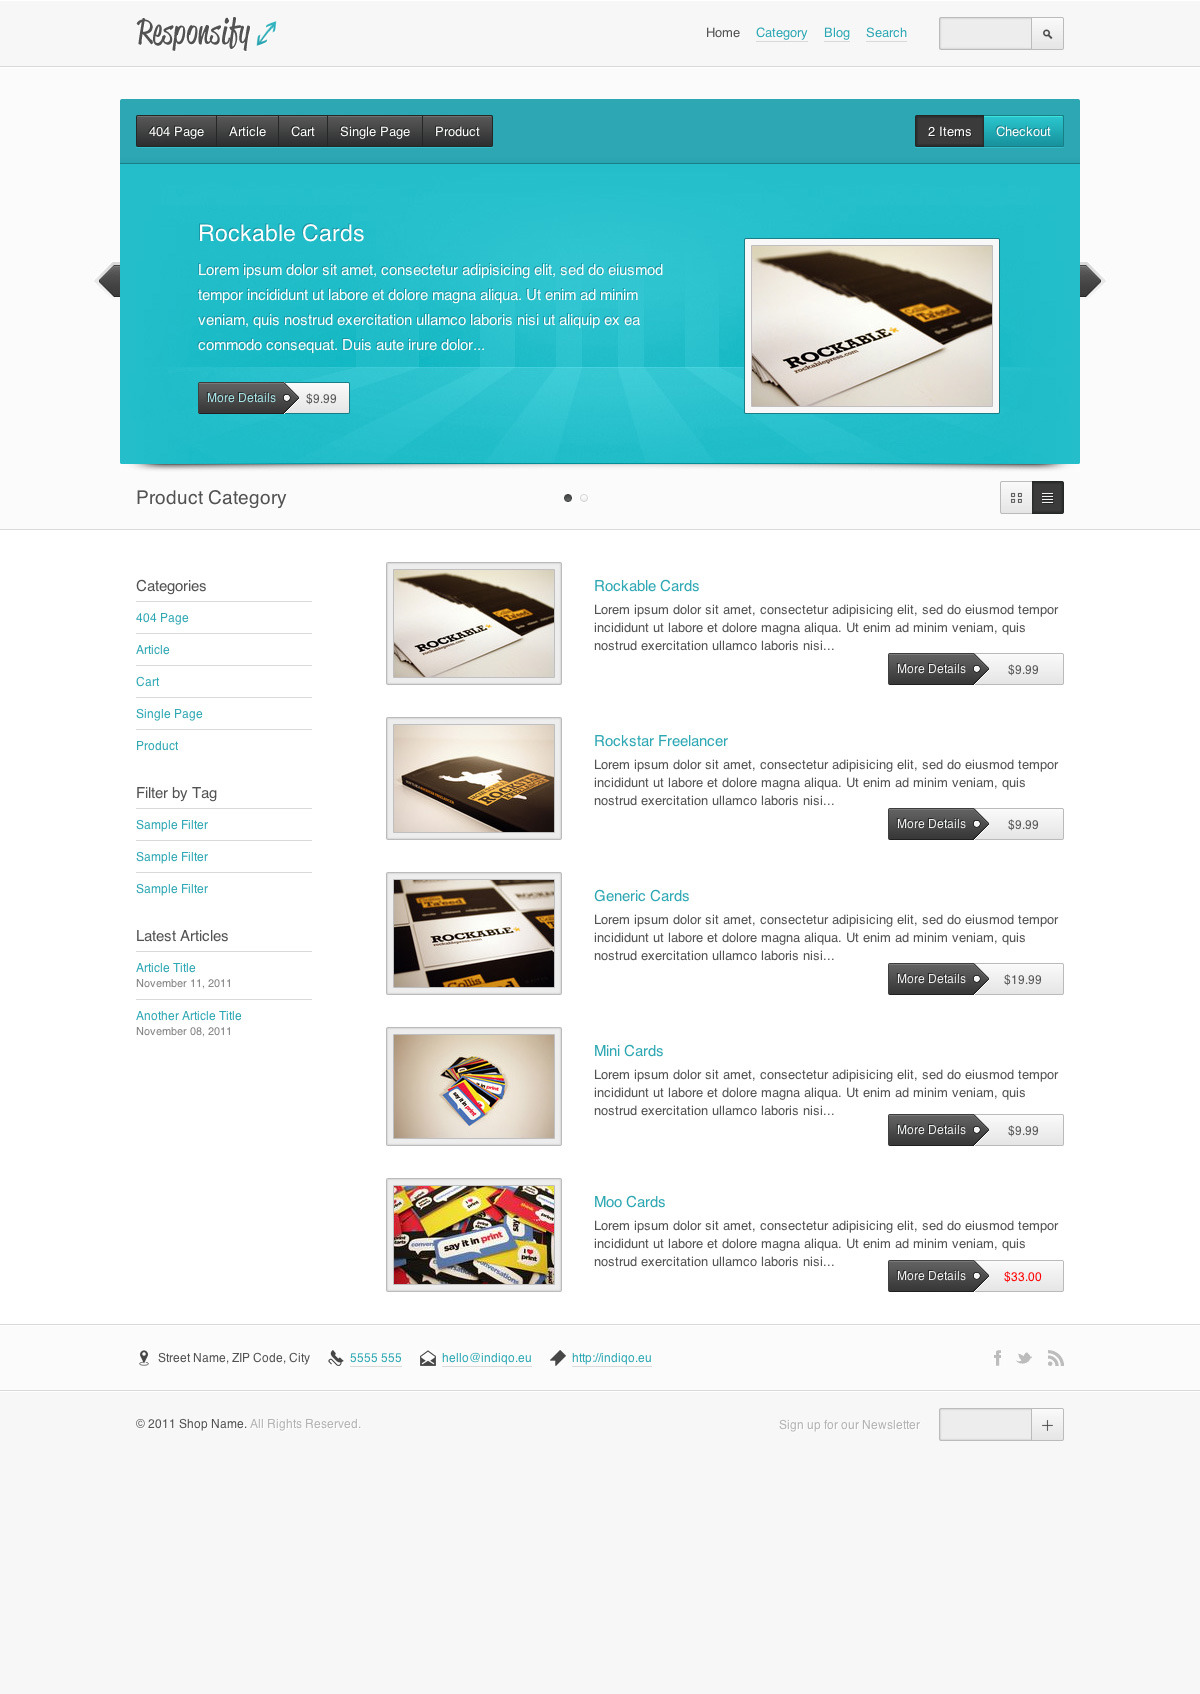 Responsify - A Responsive E-Commerce Template - The homepage as it would appear in a normal desktop browser and using the regular header style option. A quick switch between list and grid view will be possible as well.